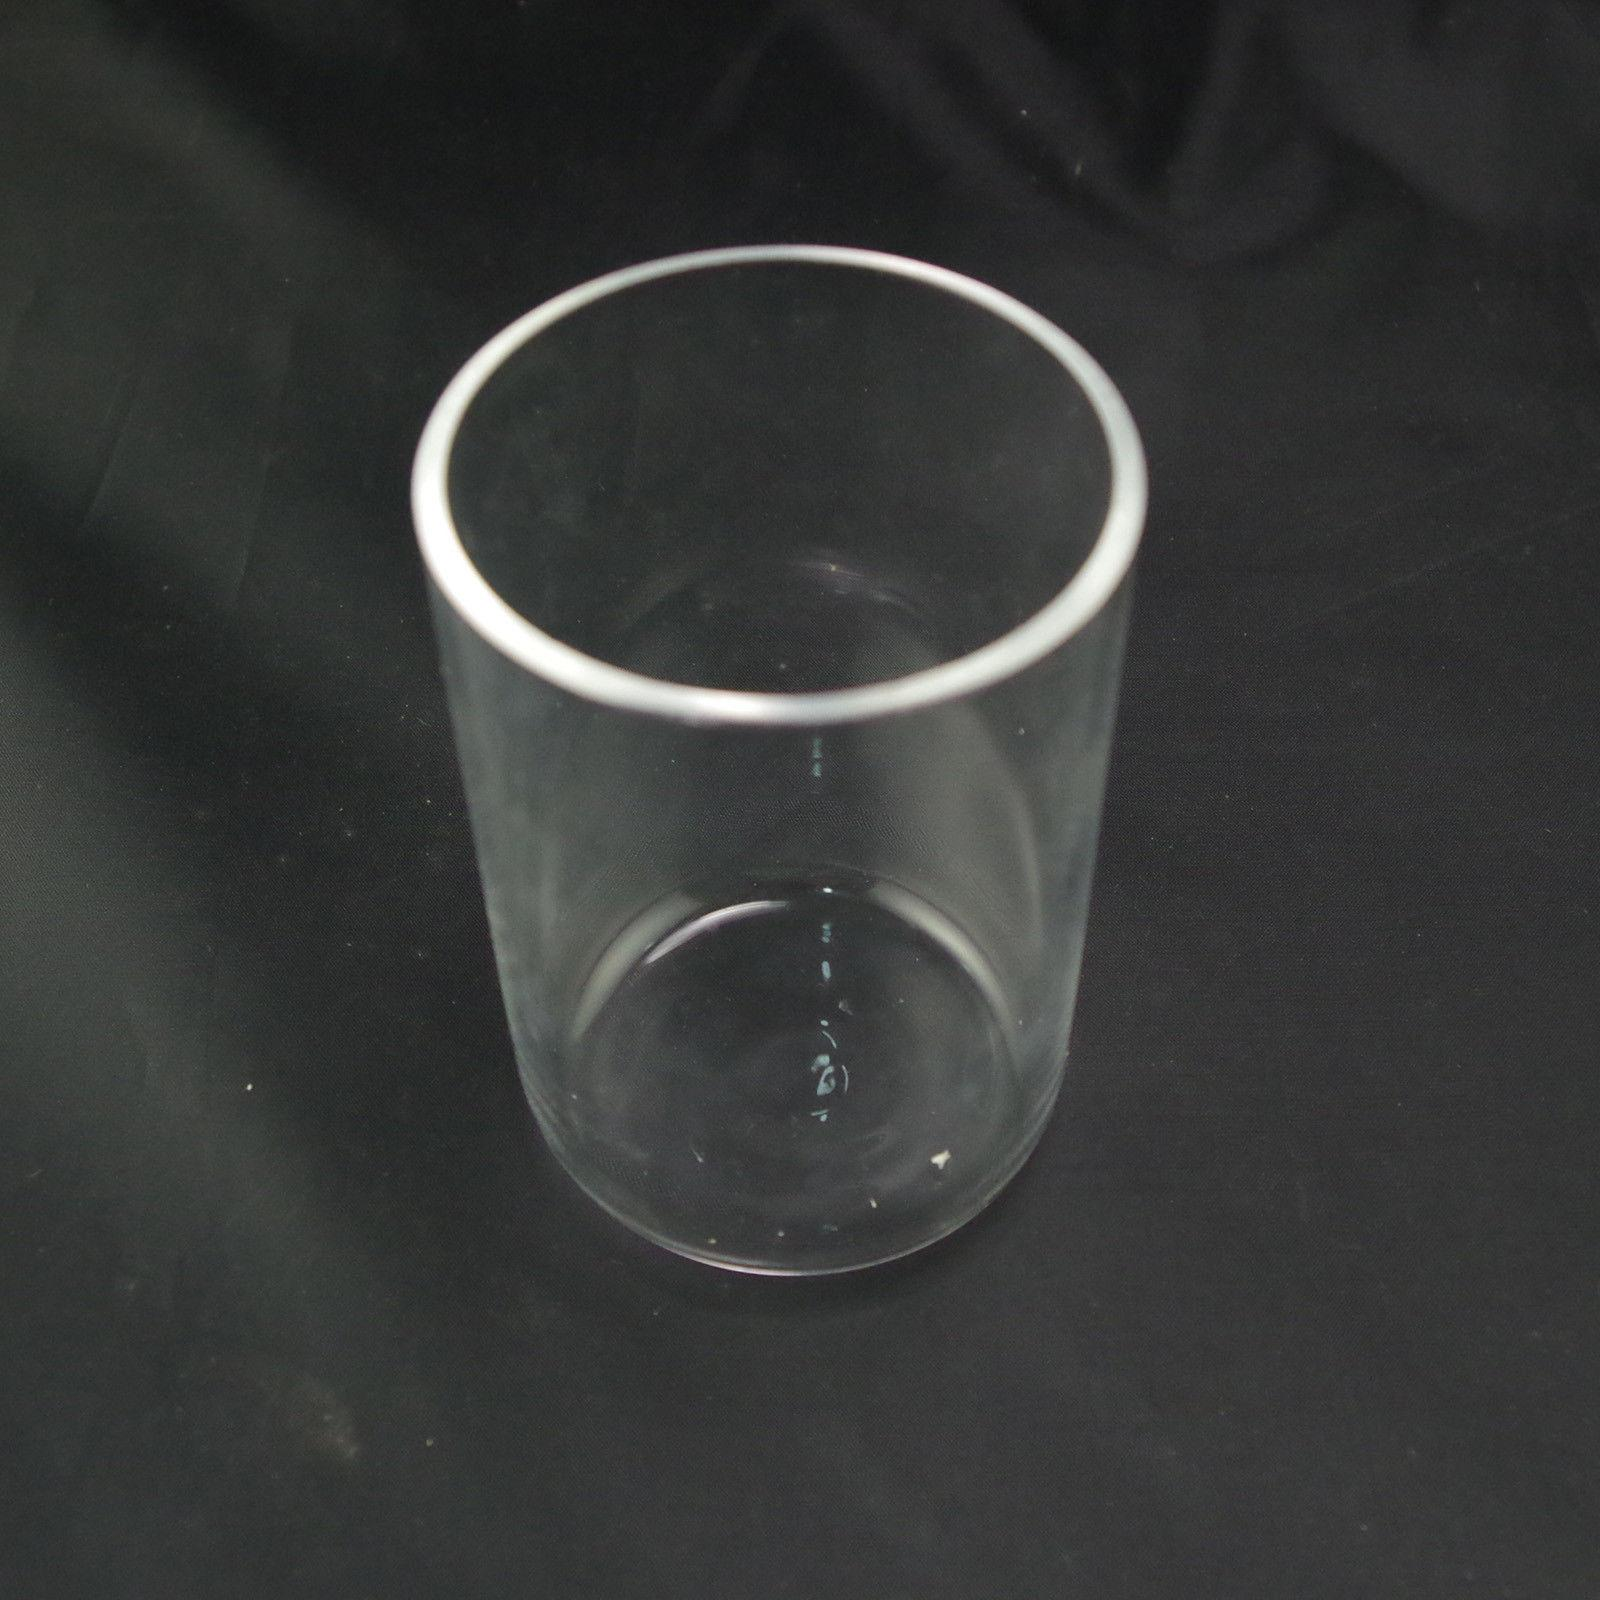 10ml Quartz Crucible 99.9% SiO2 Silica Crucible 1.5mm Thickness Melting Point 1750 Degree C